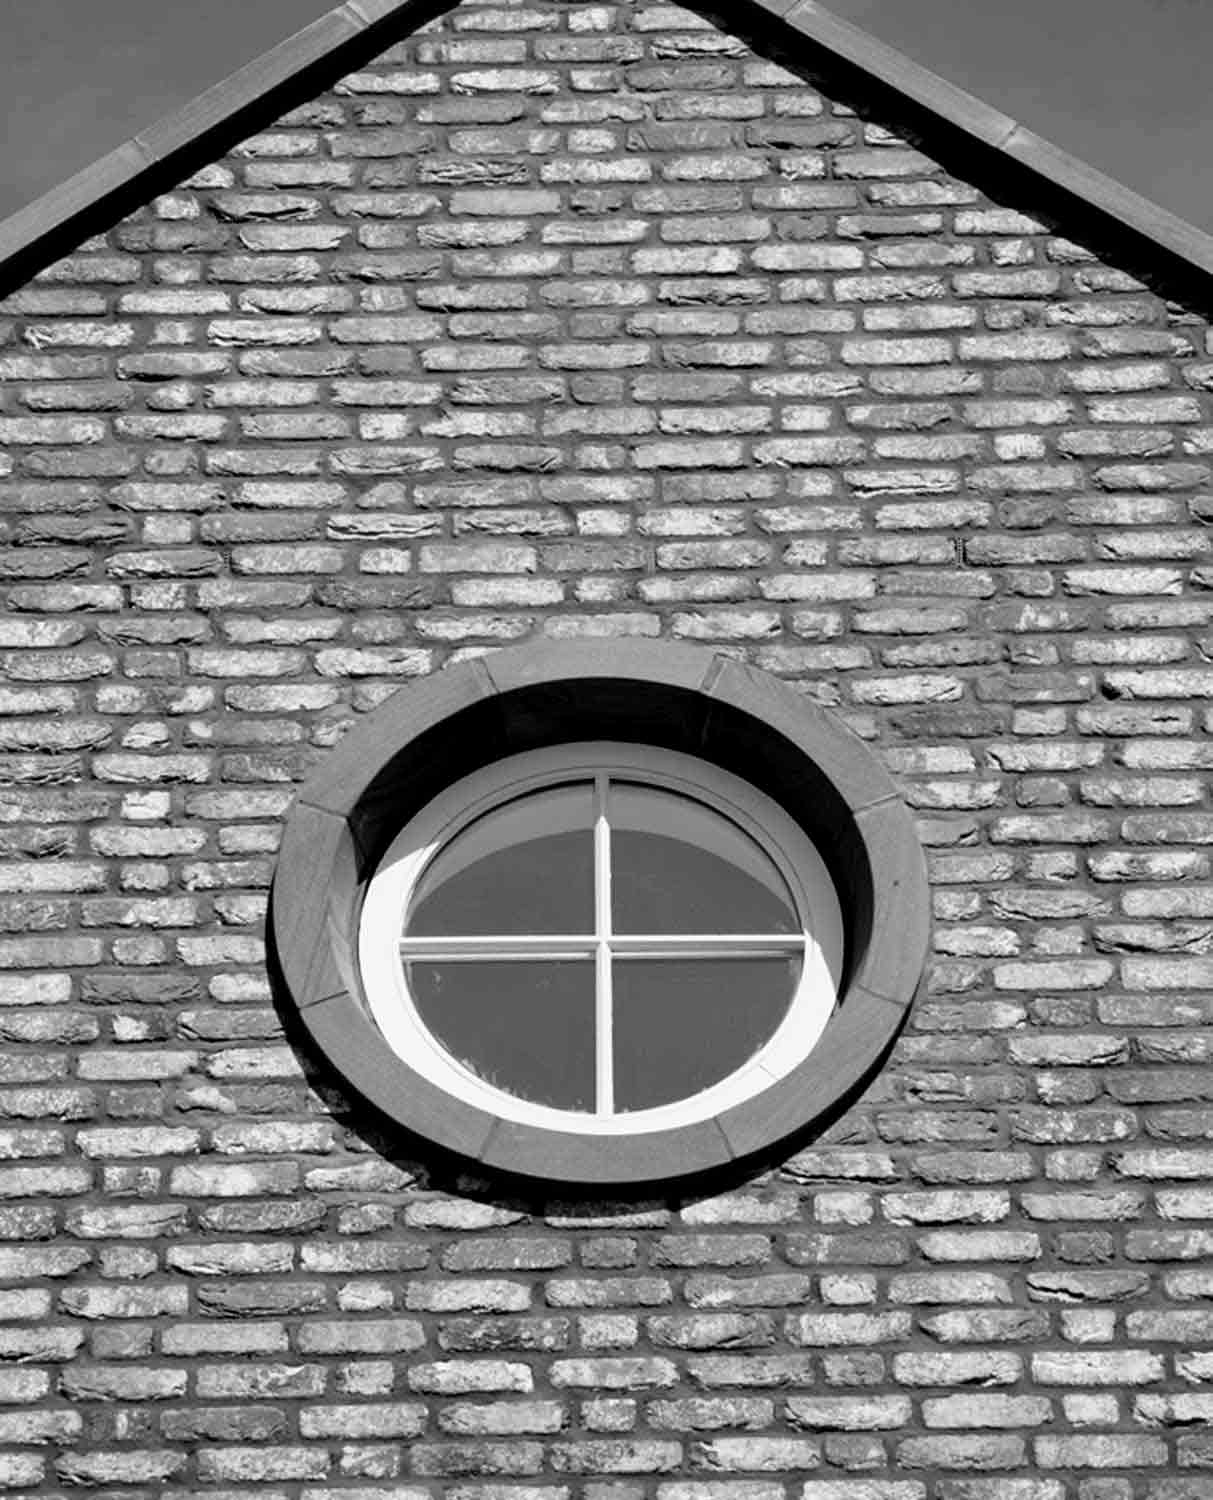 stone surround porthole window timber